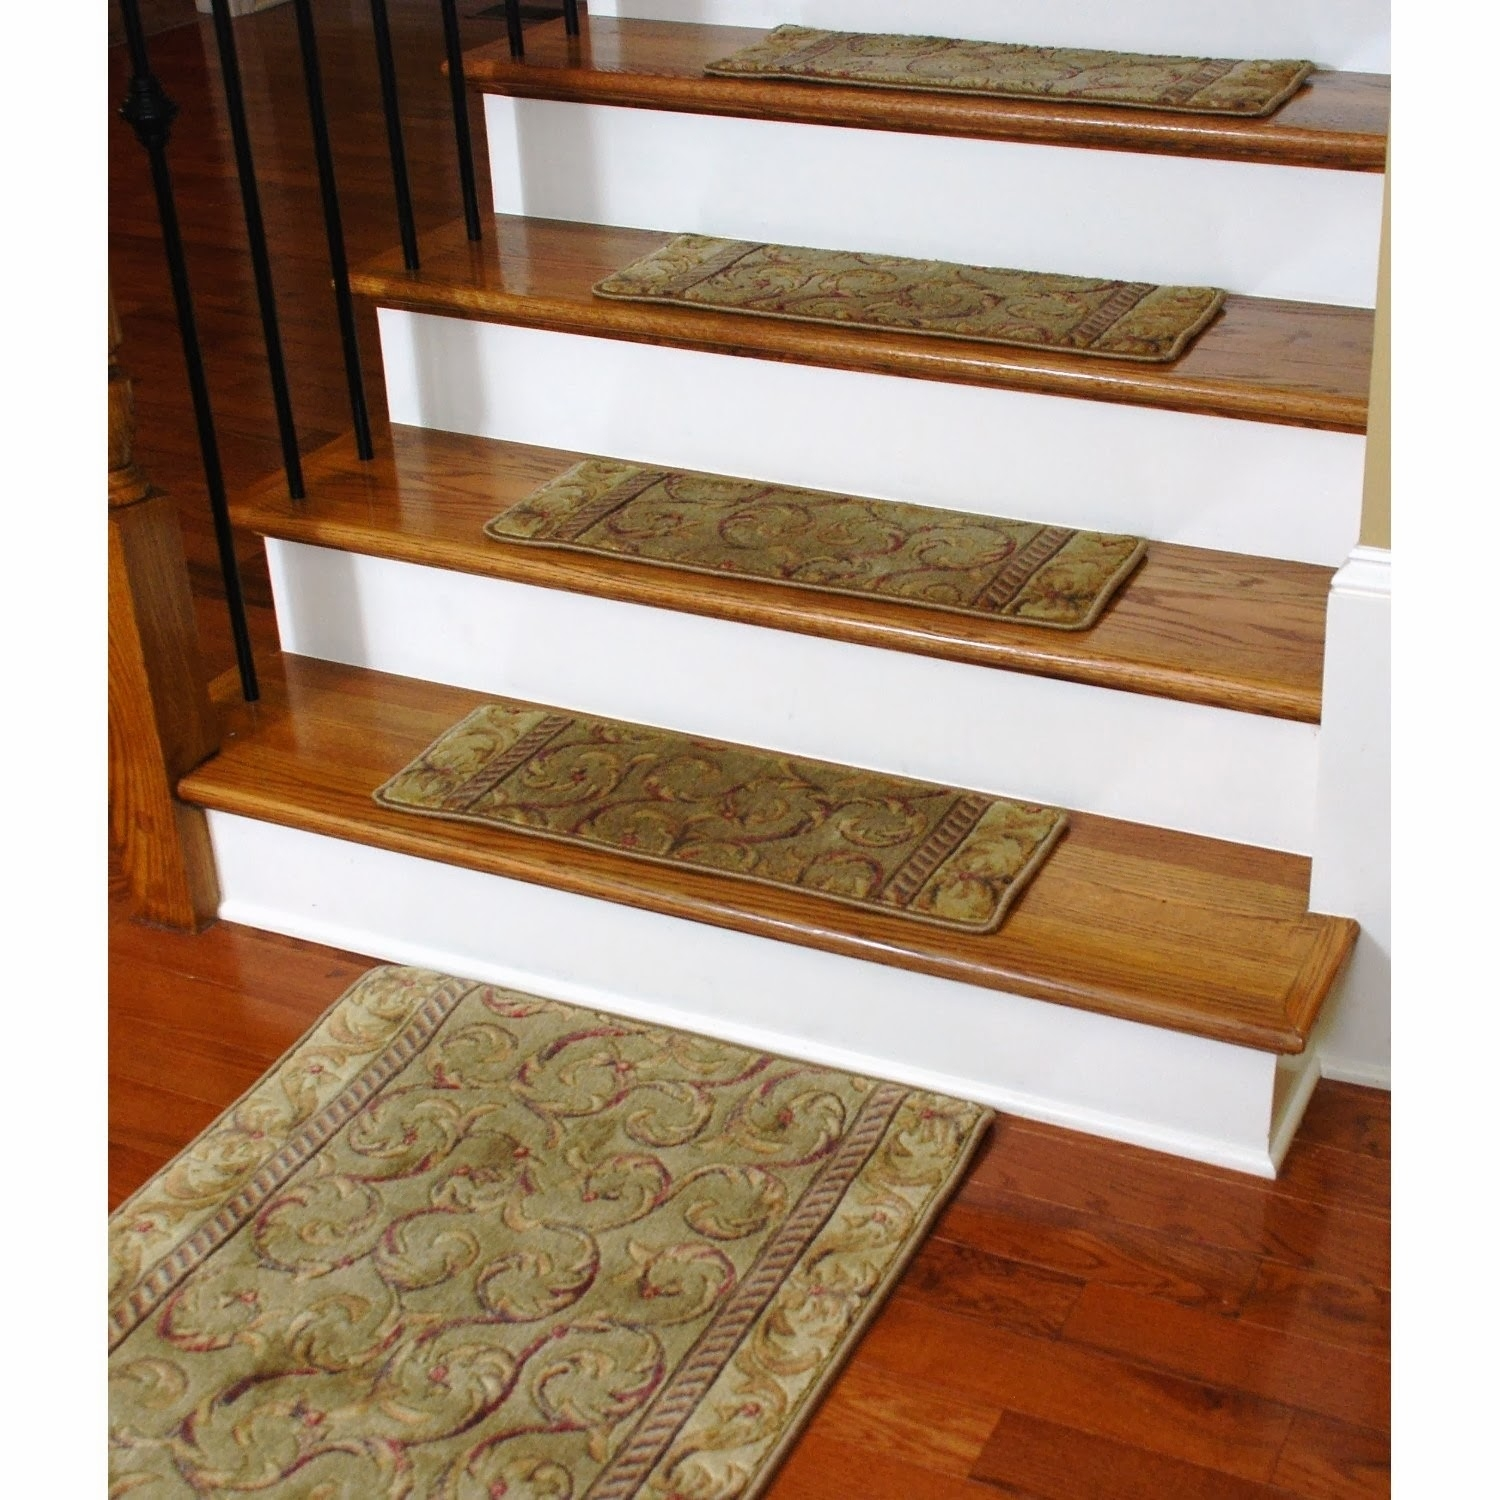 Rugs Carpet Stairway Rugs Carpet Stair Treads Pertaining To Stairway Carpet Treads (Image 12 of 15)